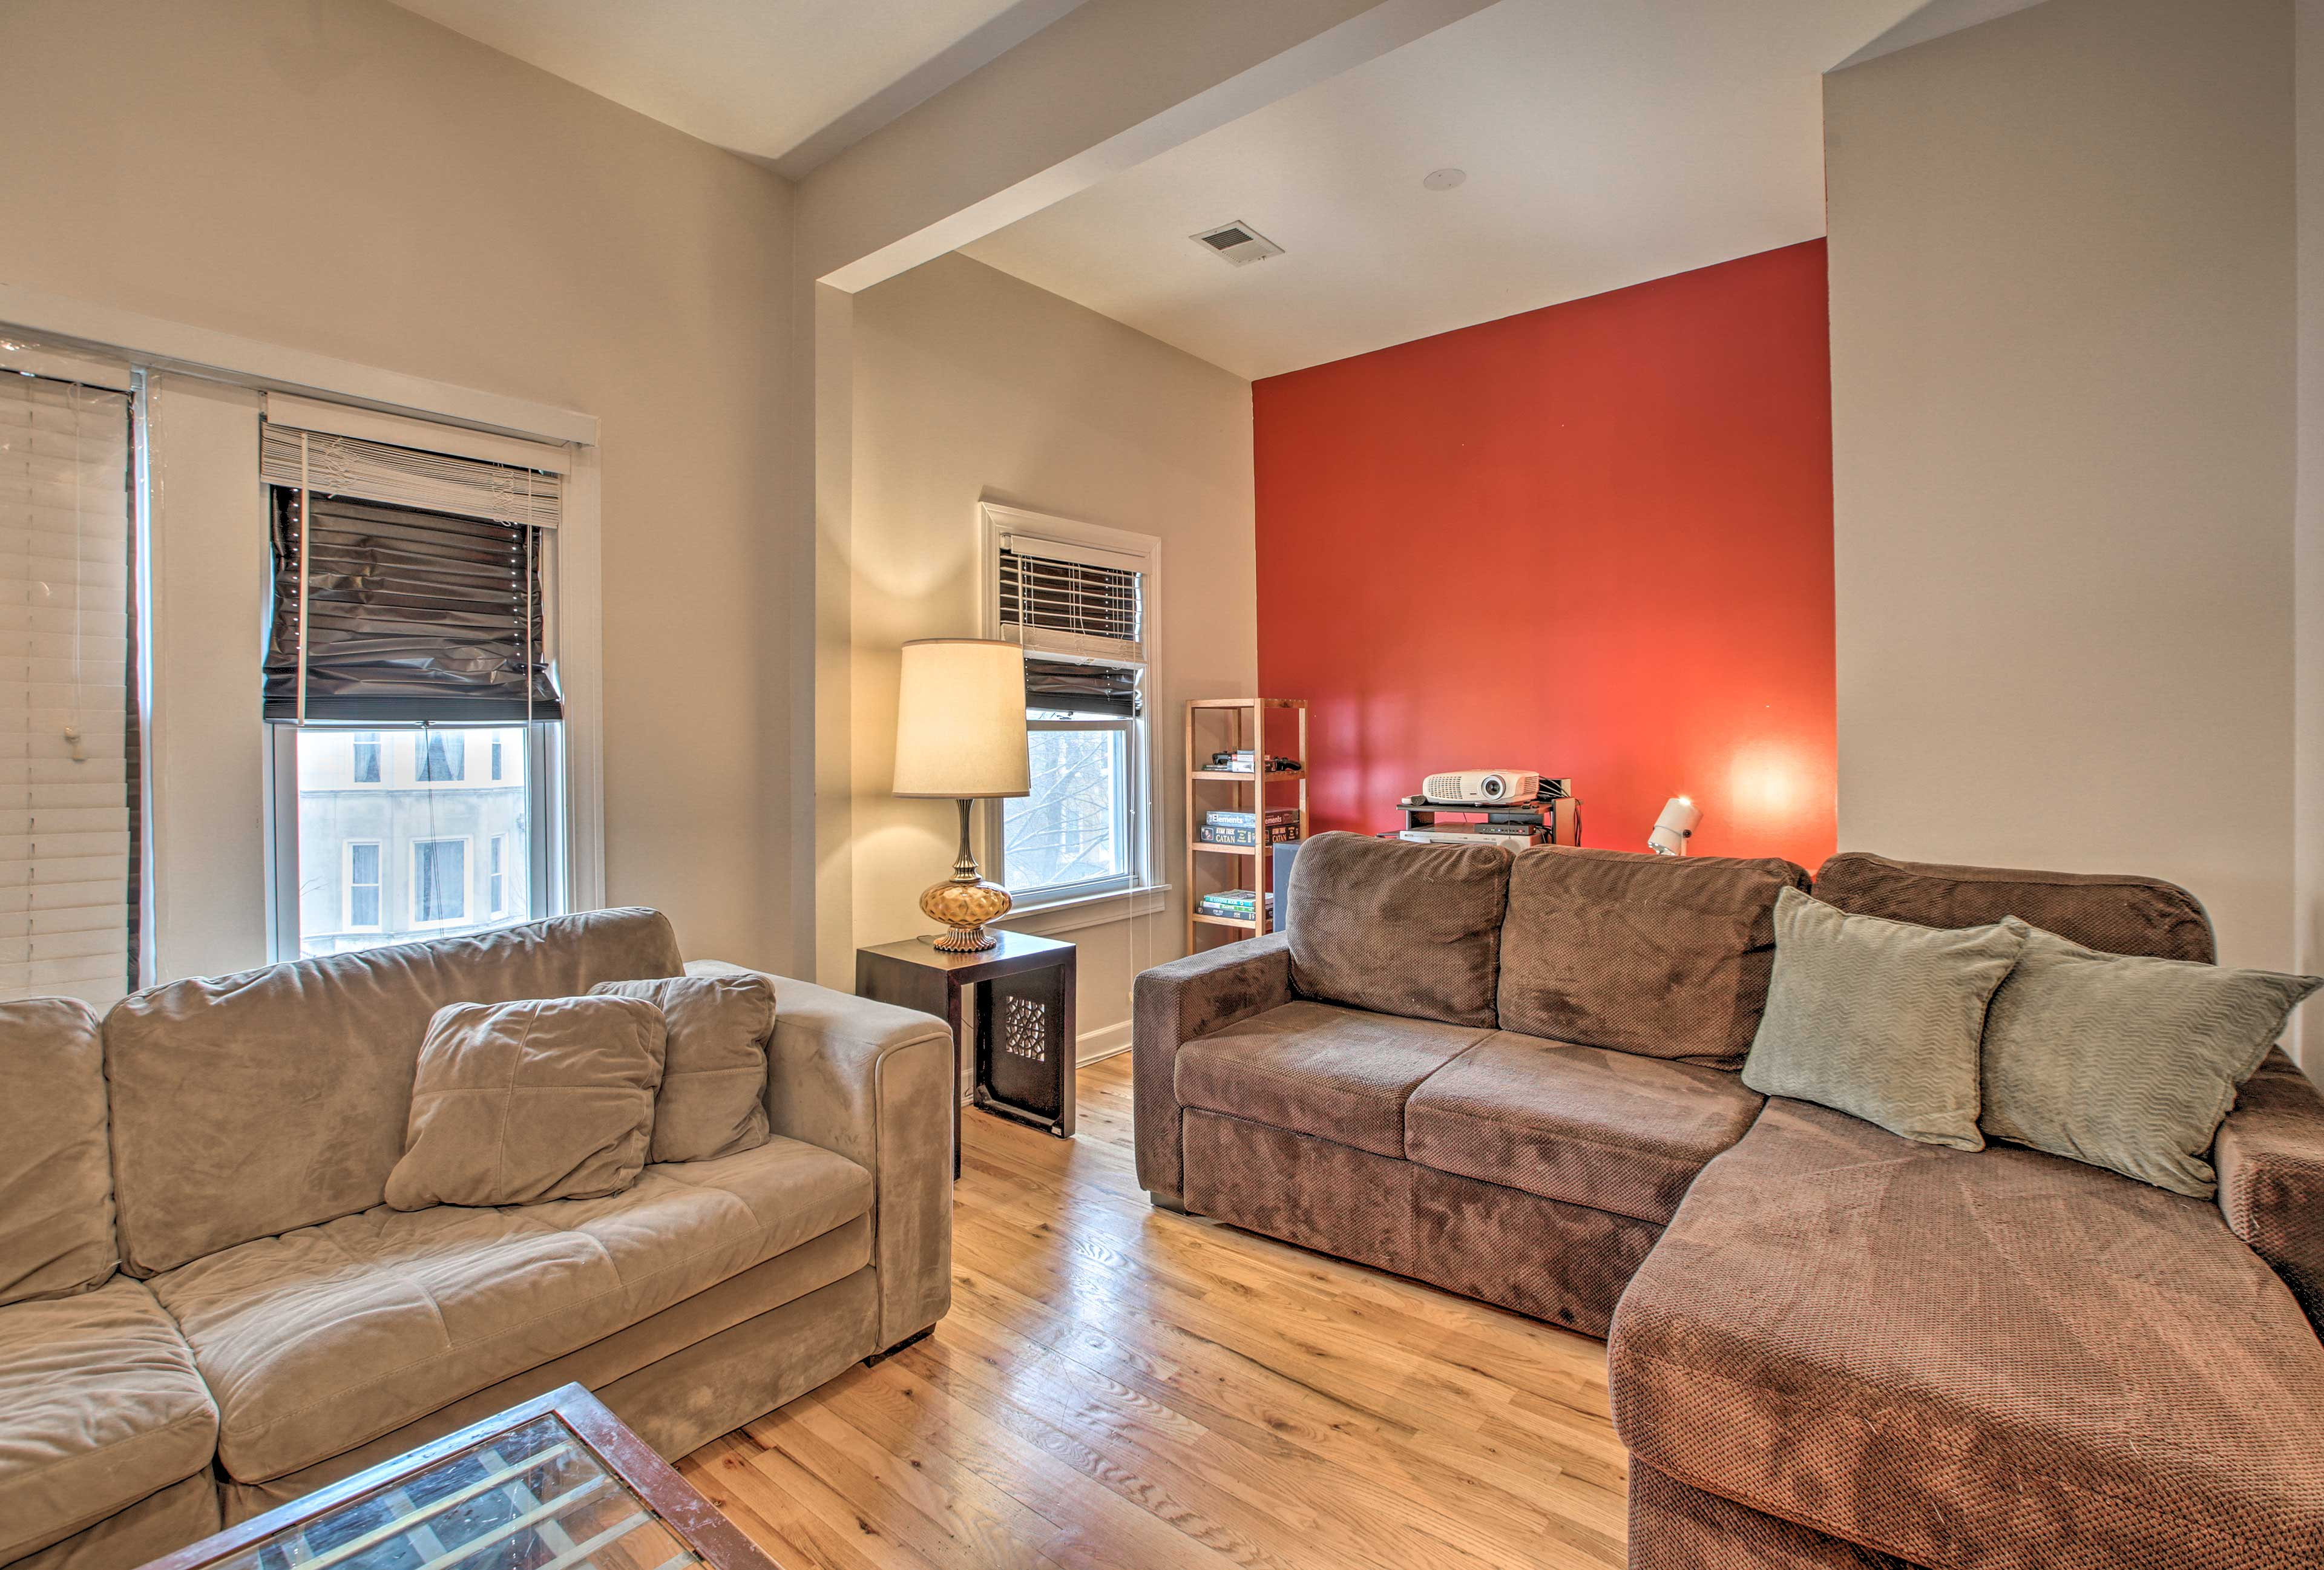 The 2 couches offer plenty of space for your group of 10 to spread out.